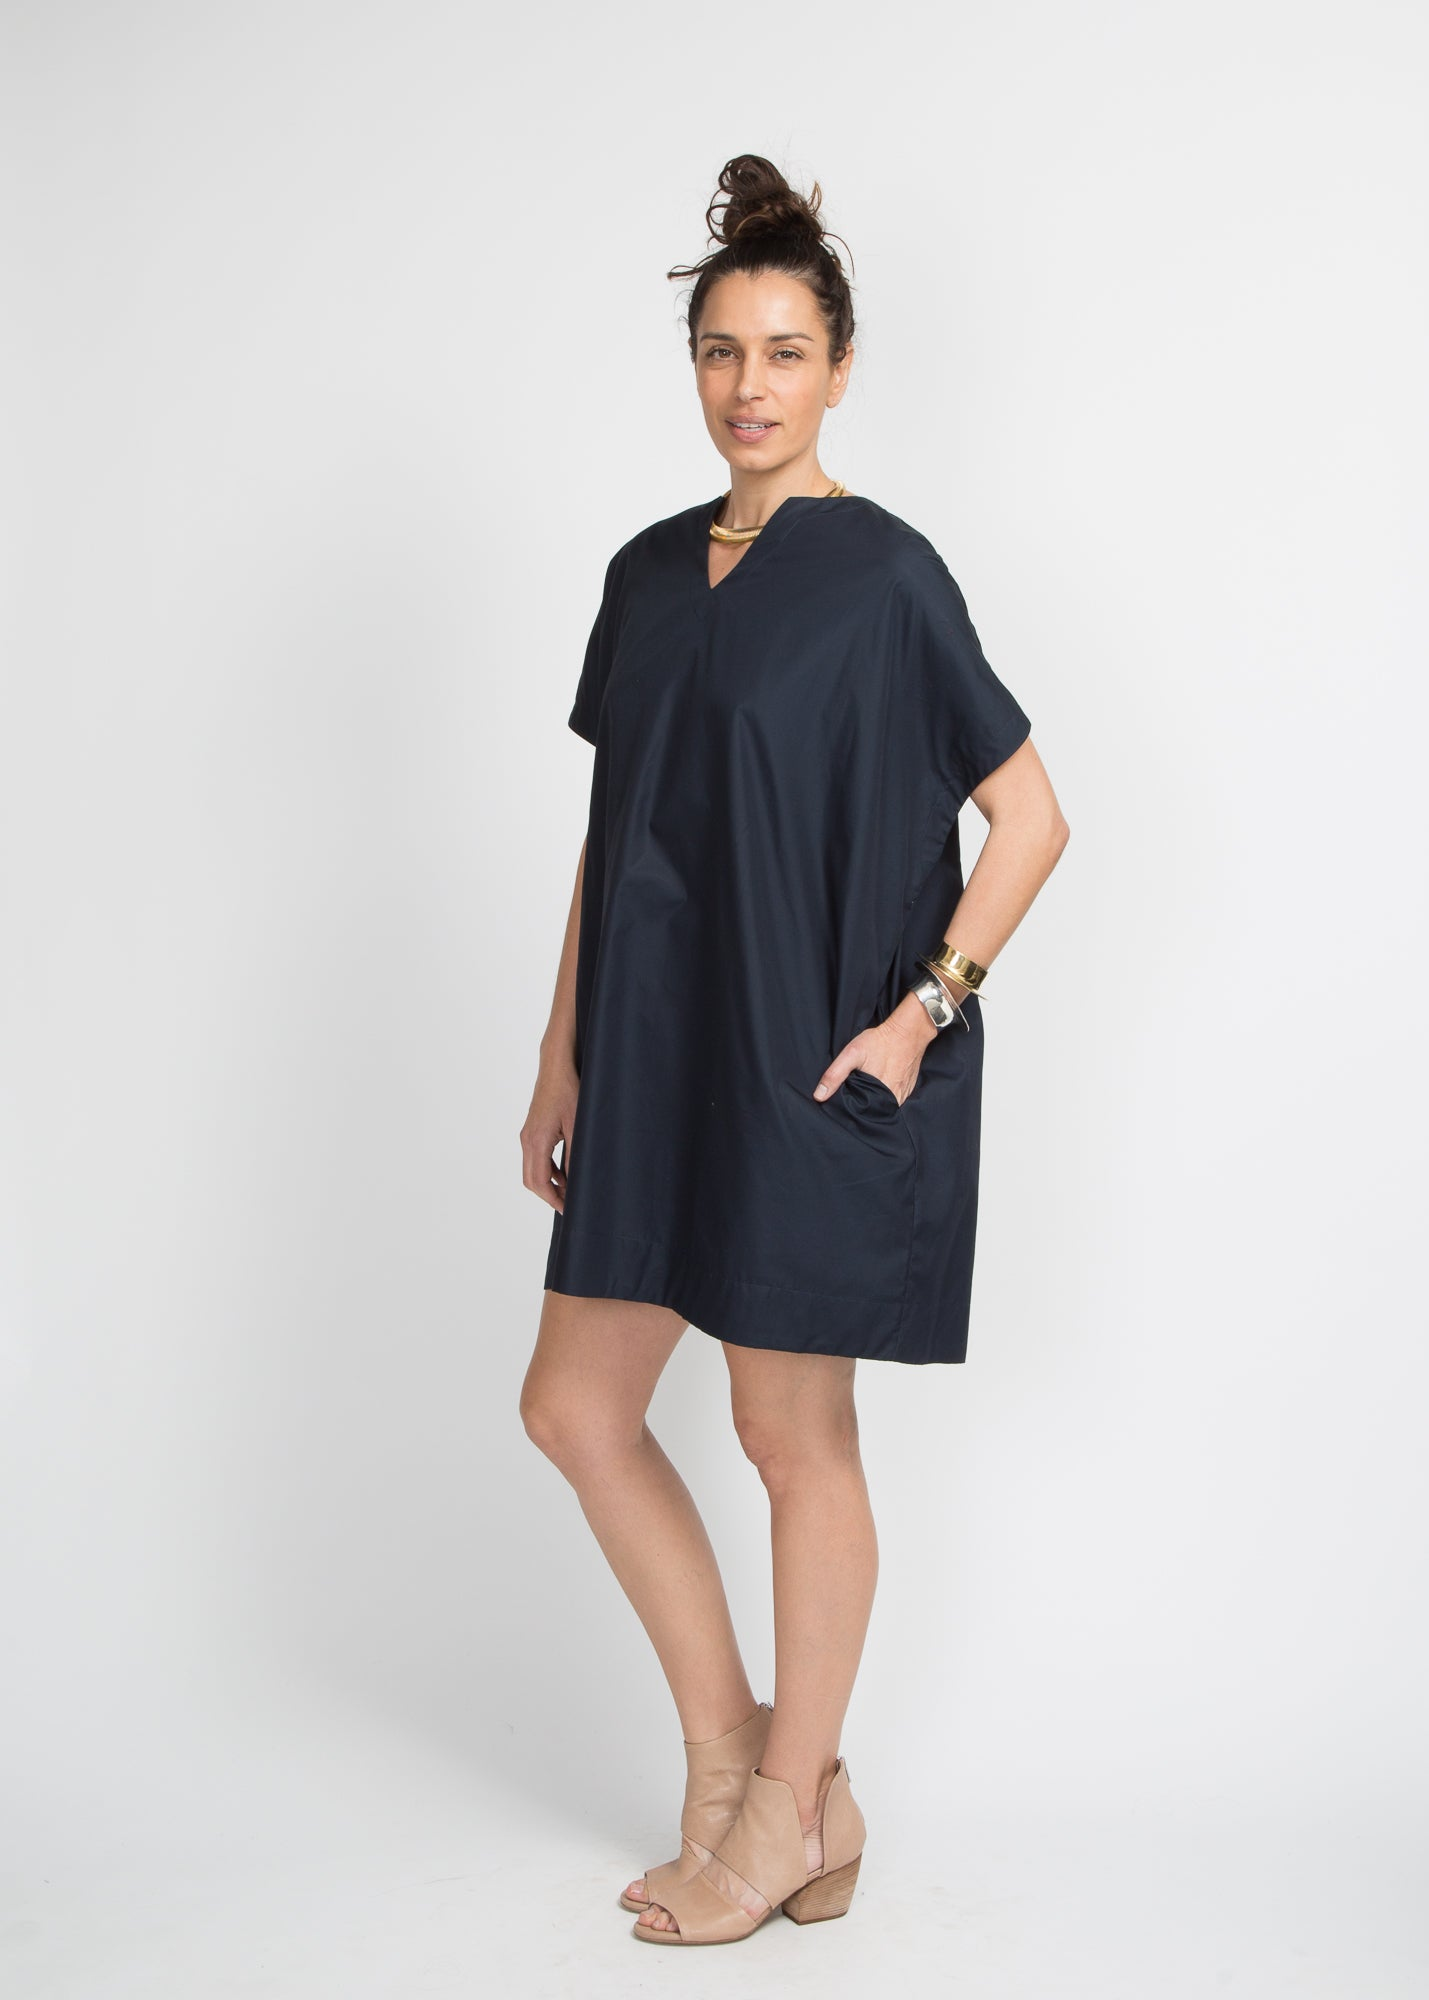 SBJ Austin Mary Dress